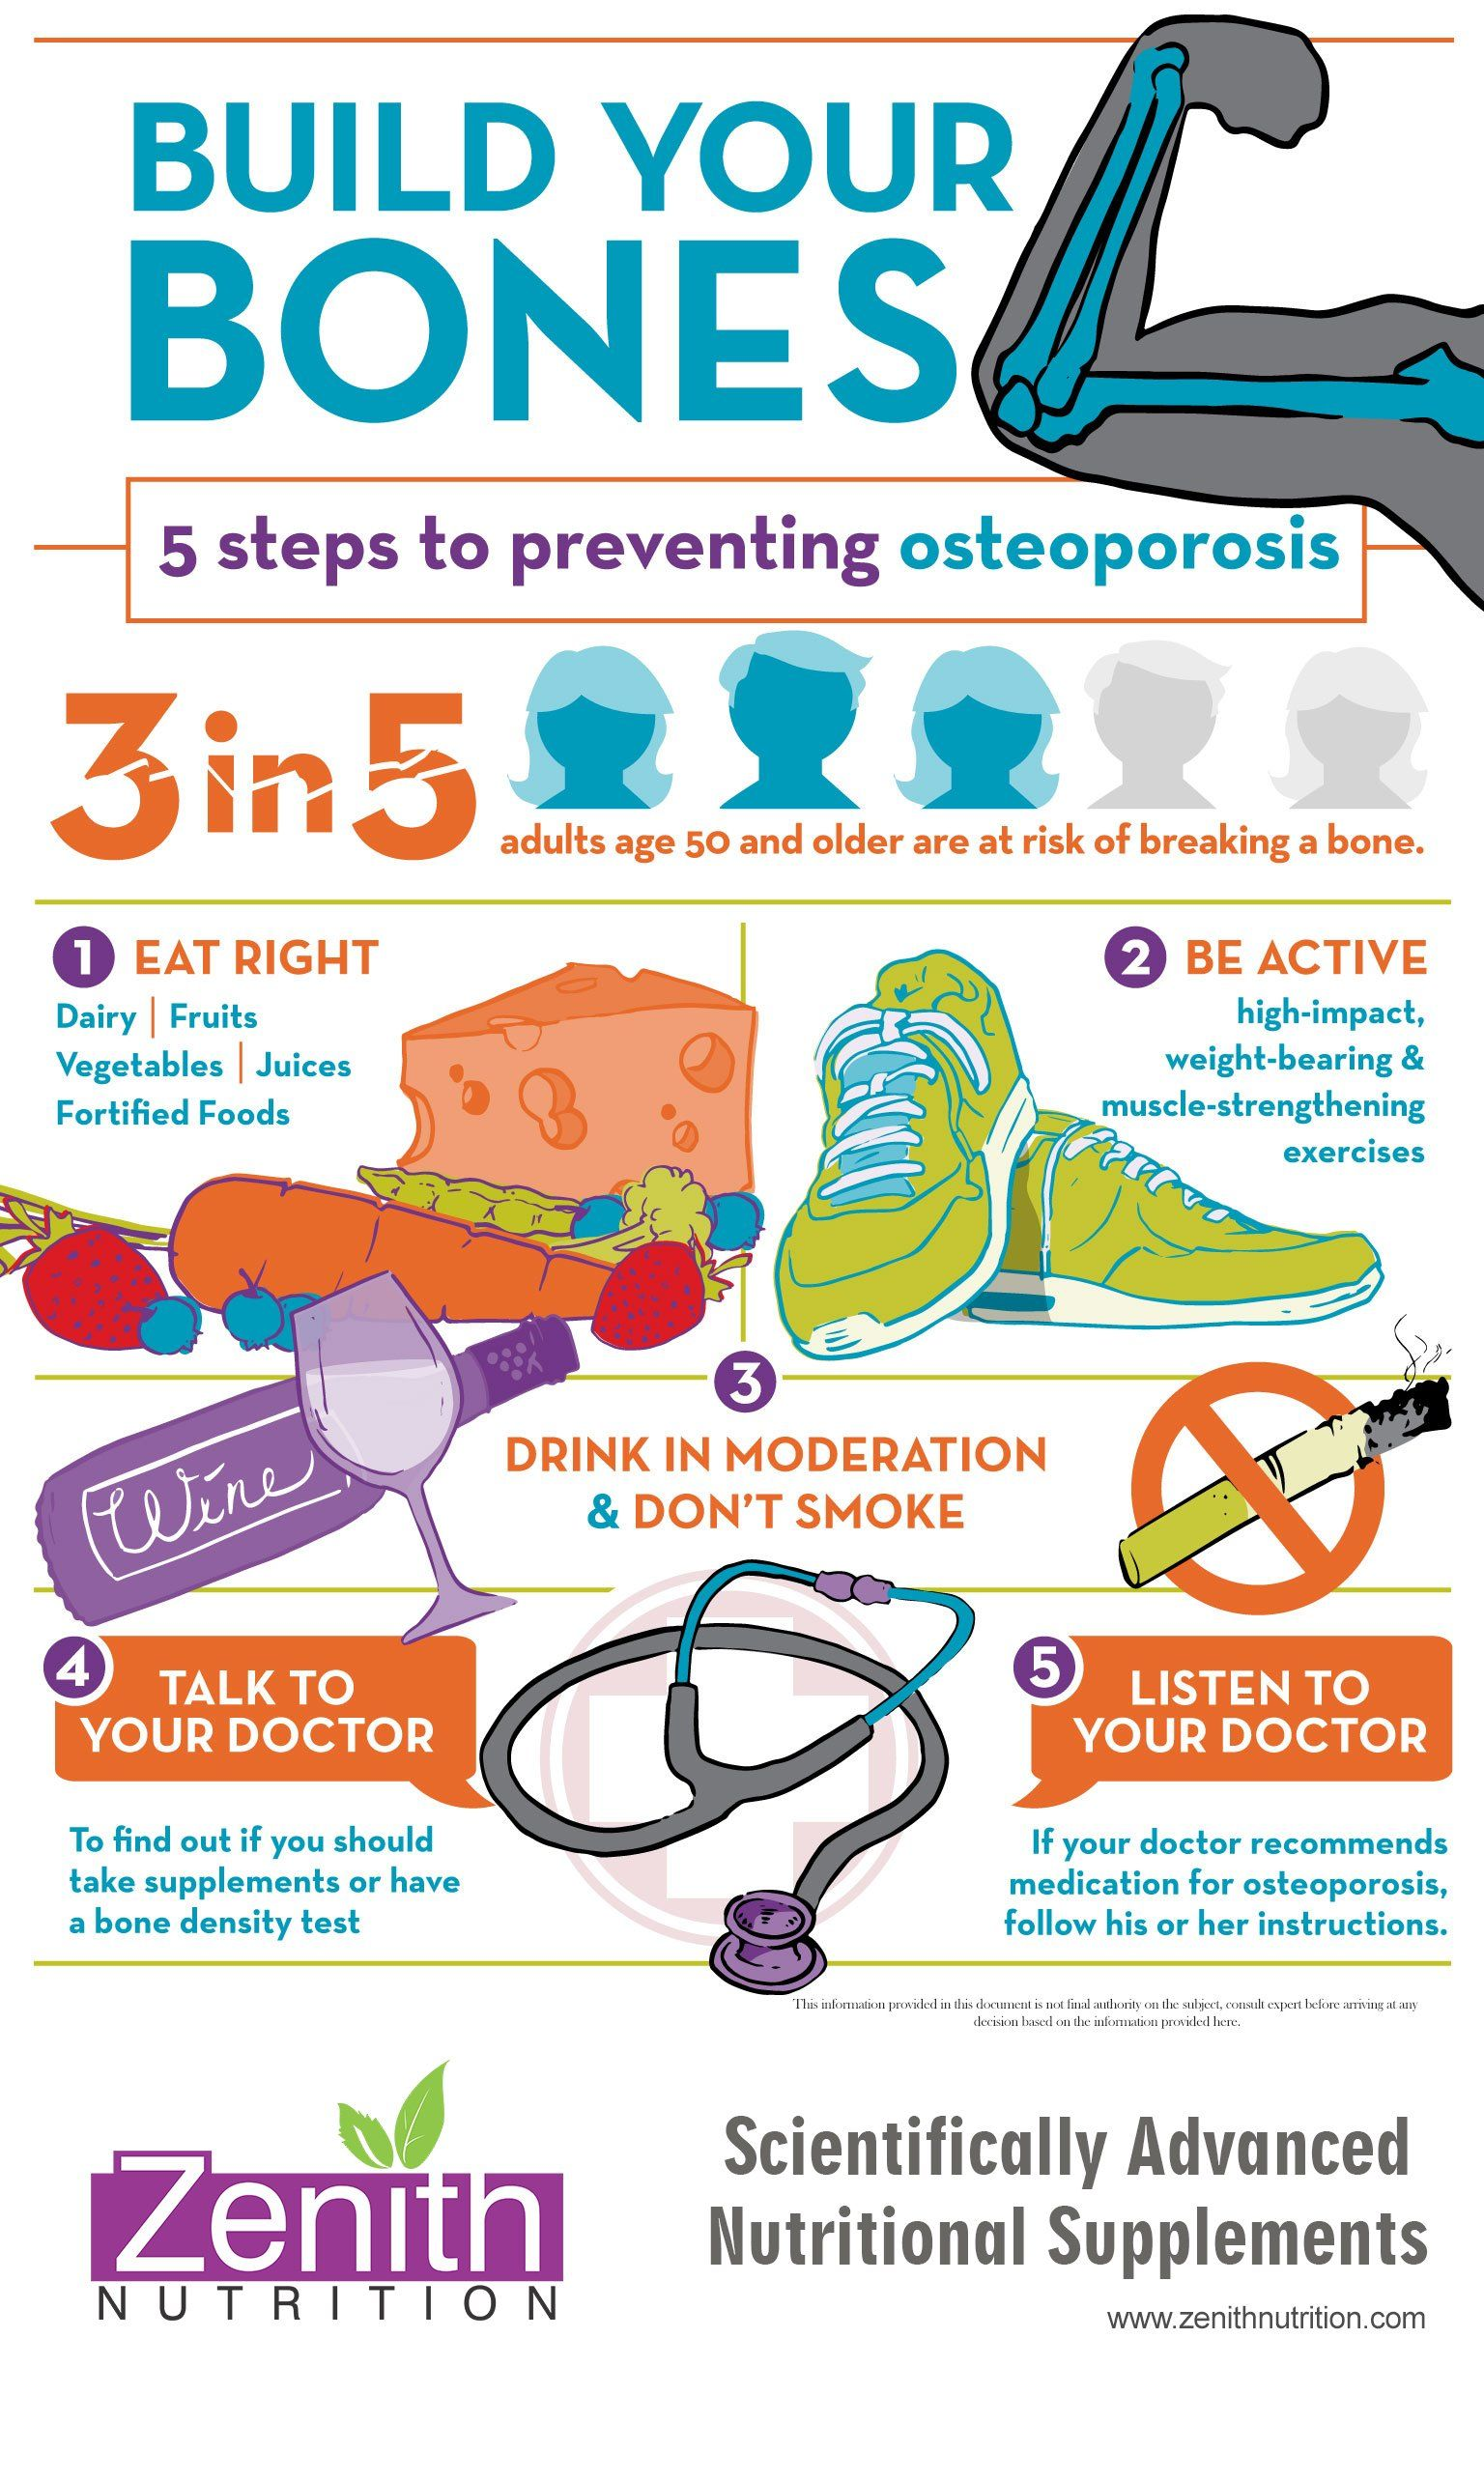 Build Your Bones. 5 Steps to preventing Osteoporosis. Eat